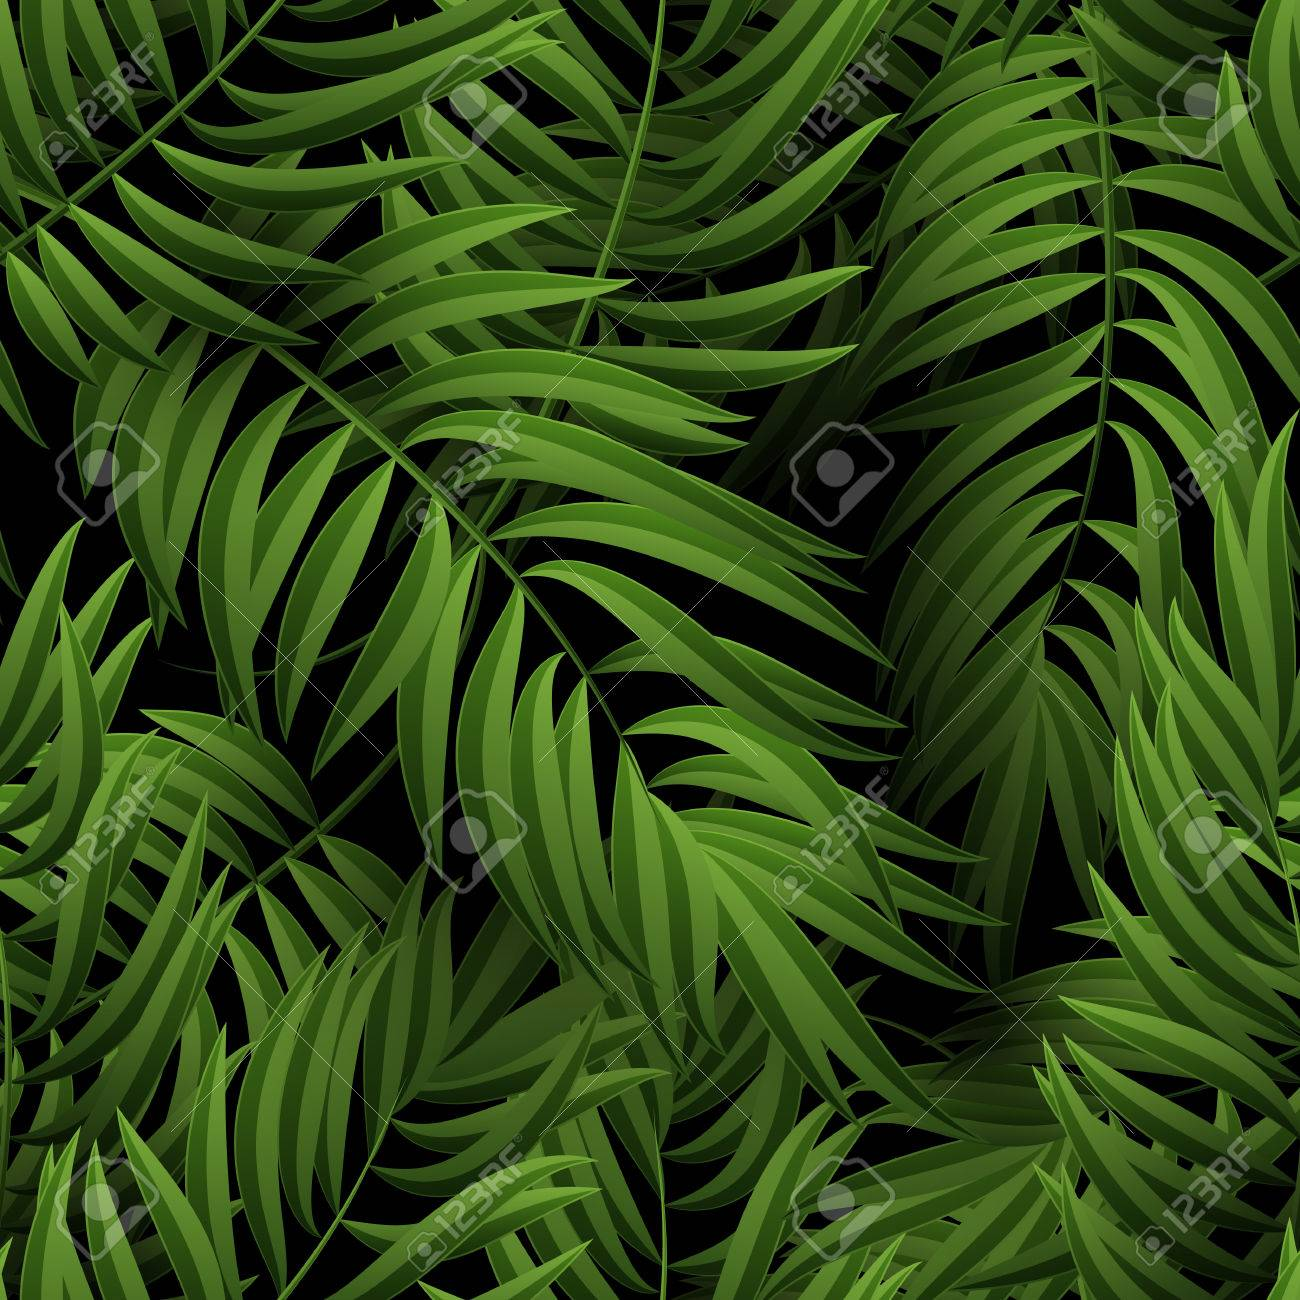 Seamless tropical jungle floral pattern with palm fronds. illustration. Green Palm leaves pattern on black background - 57247725